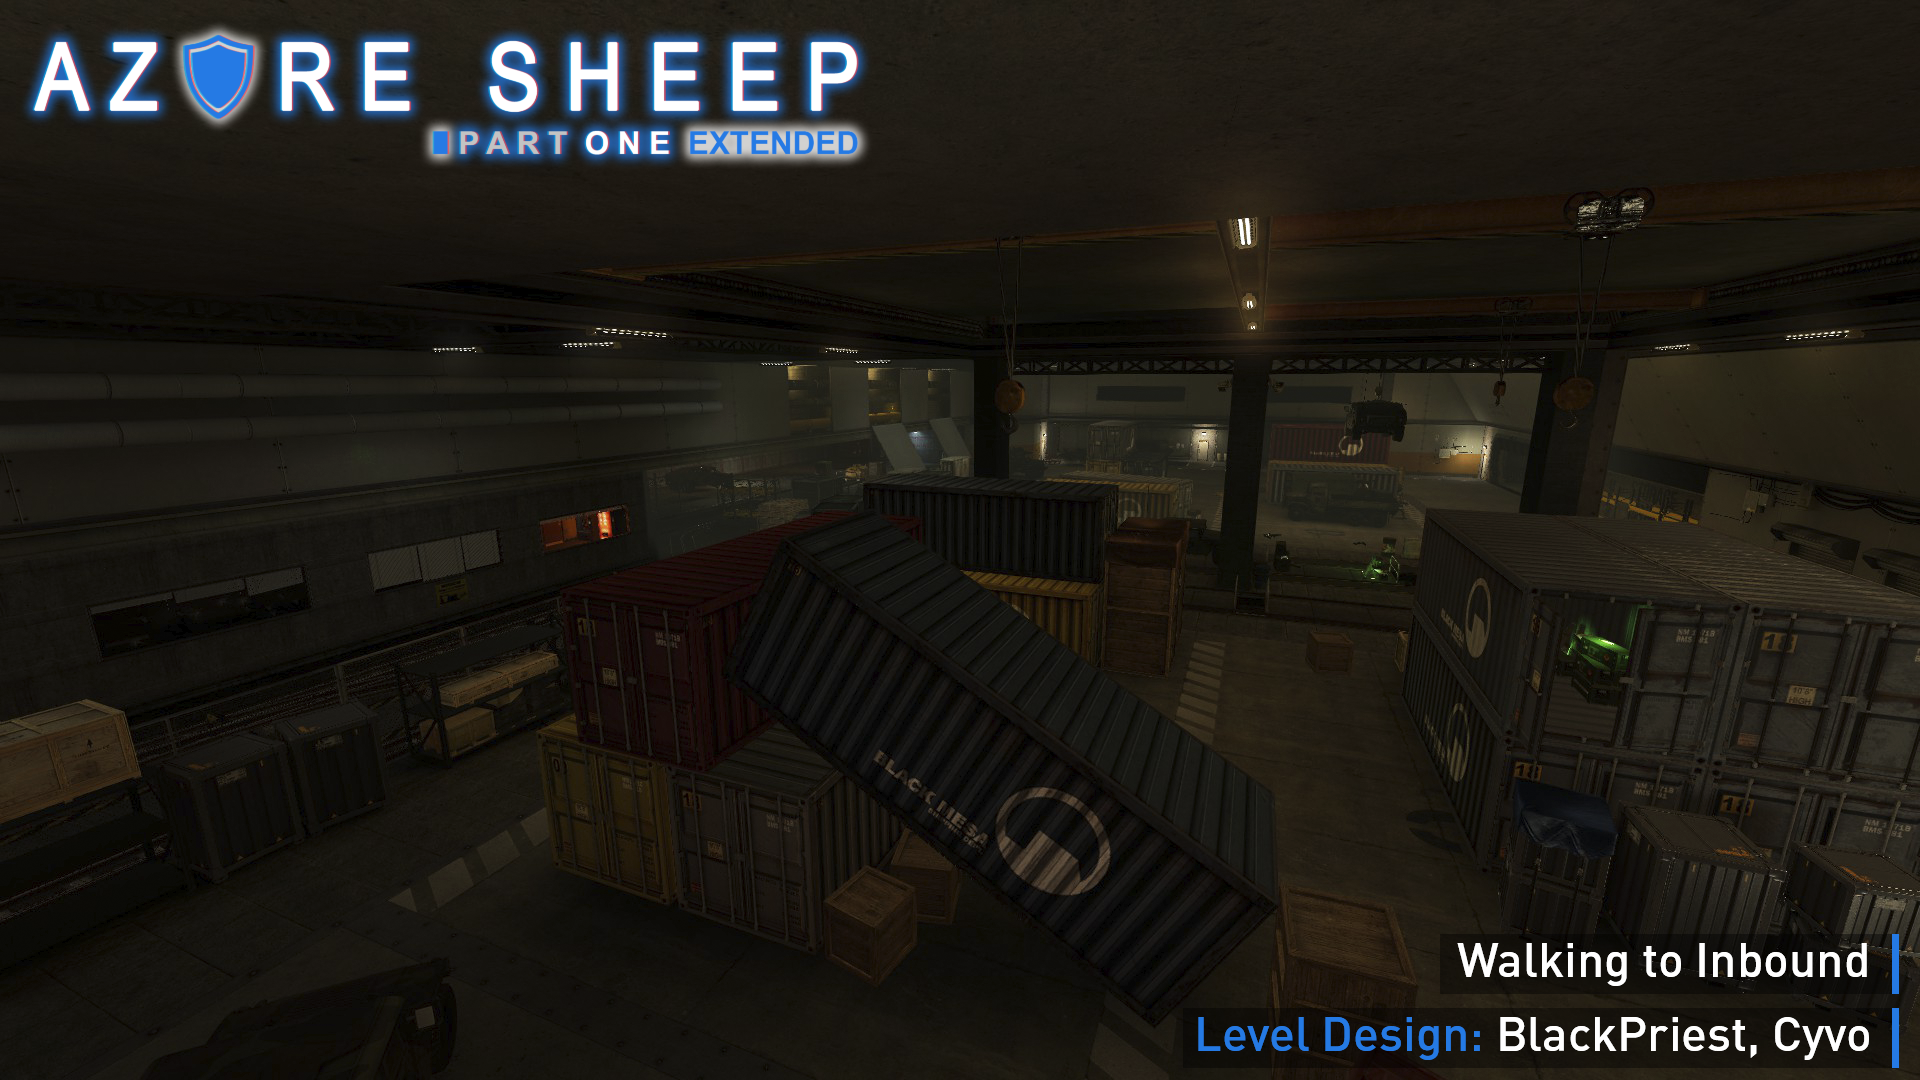 Azure Sheep: Part One Extended